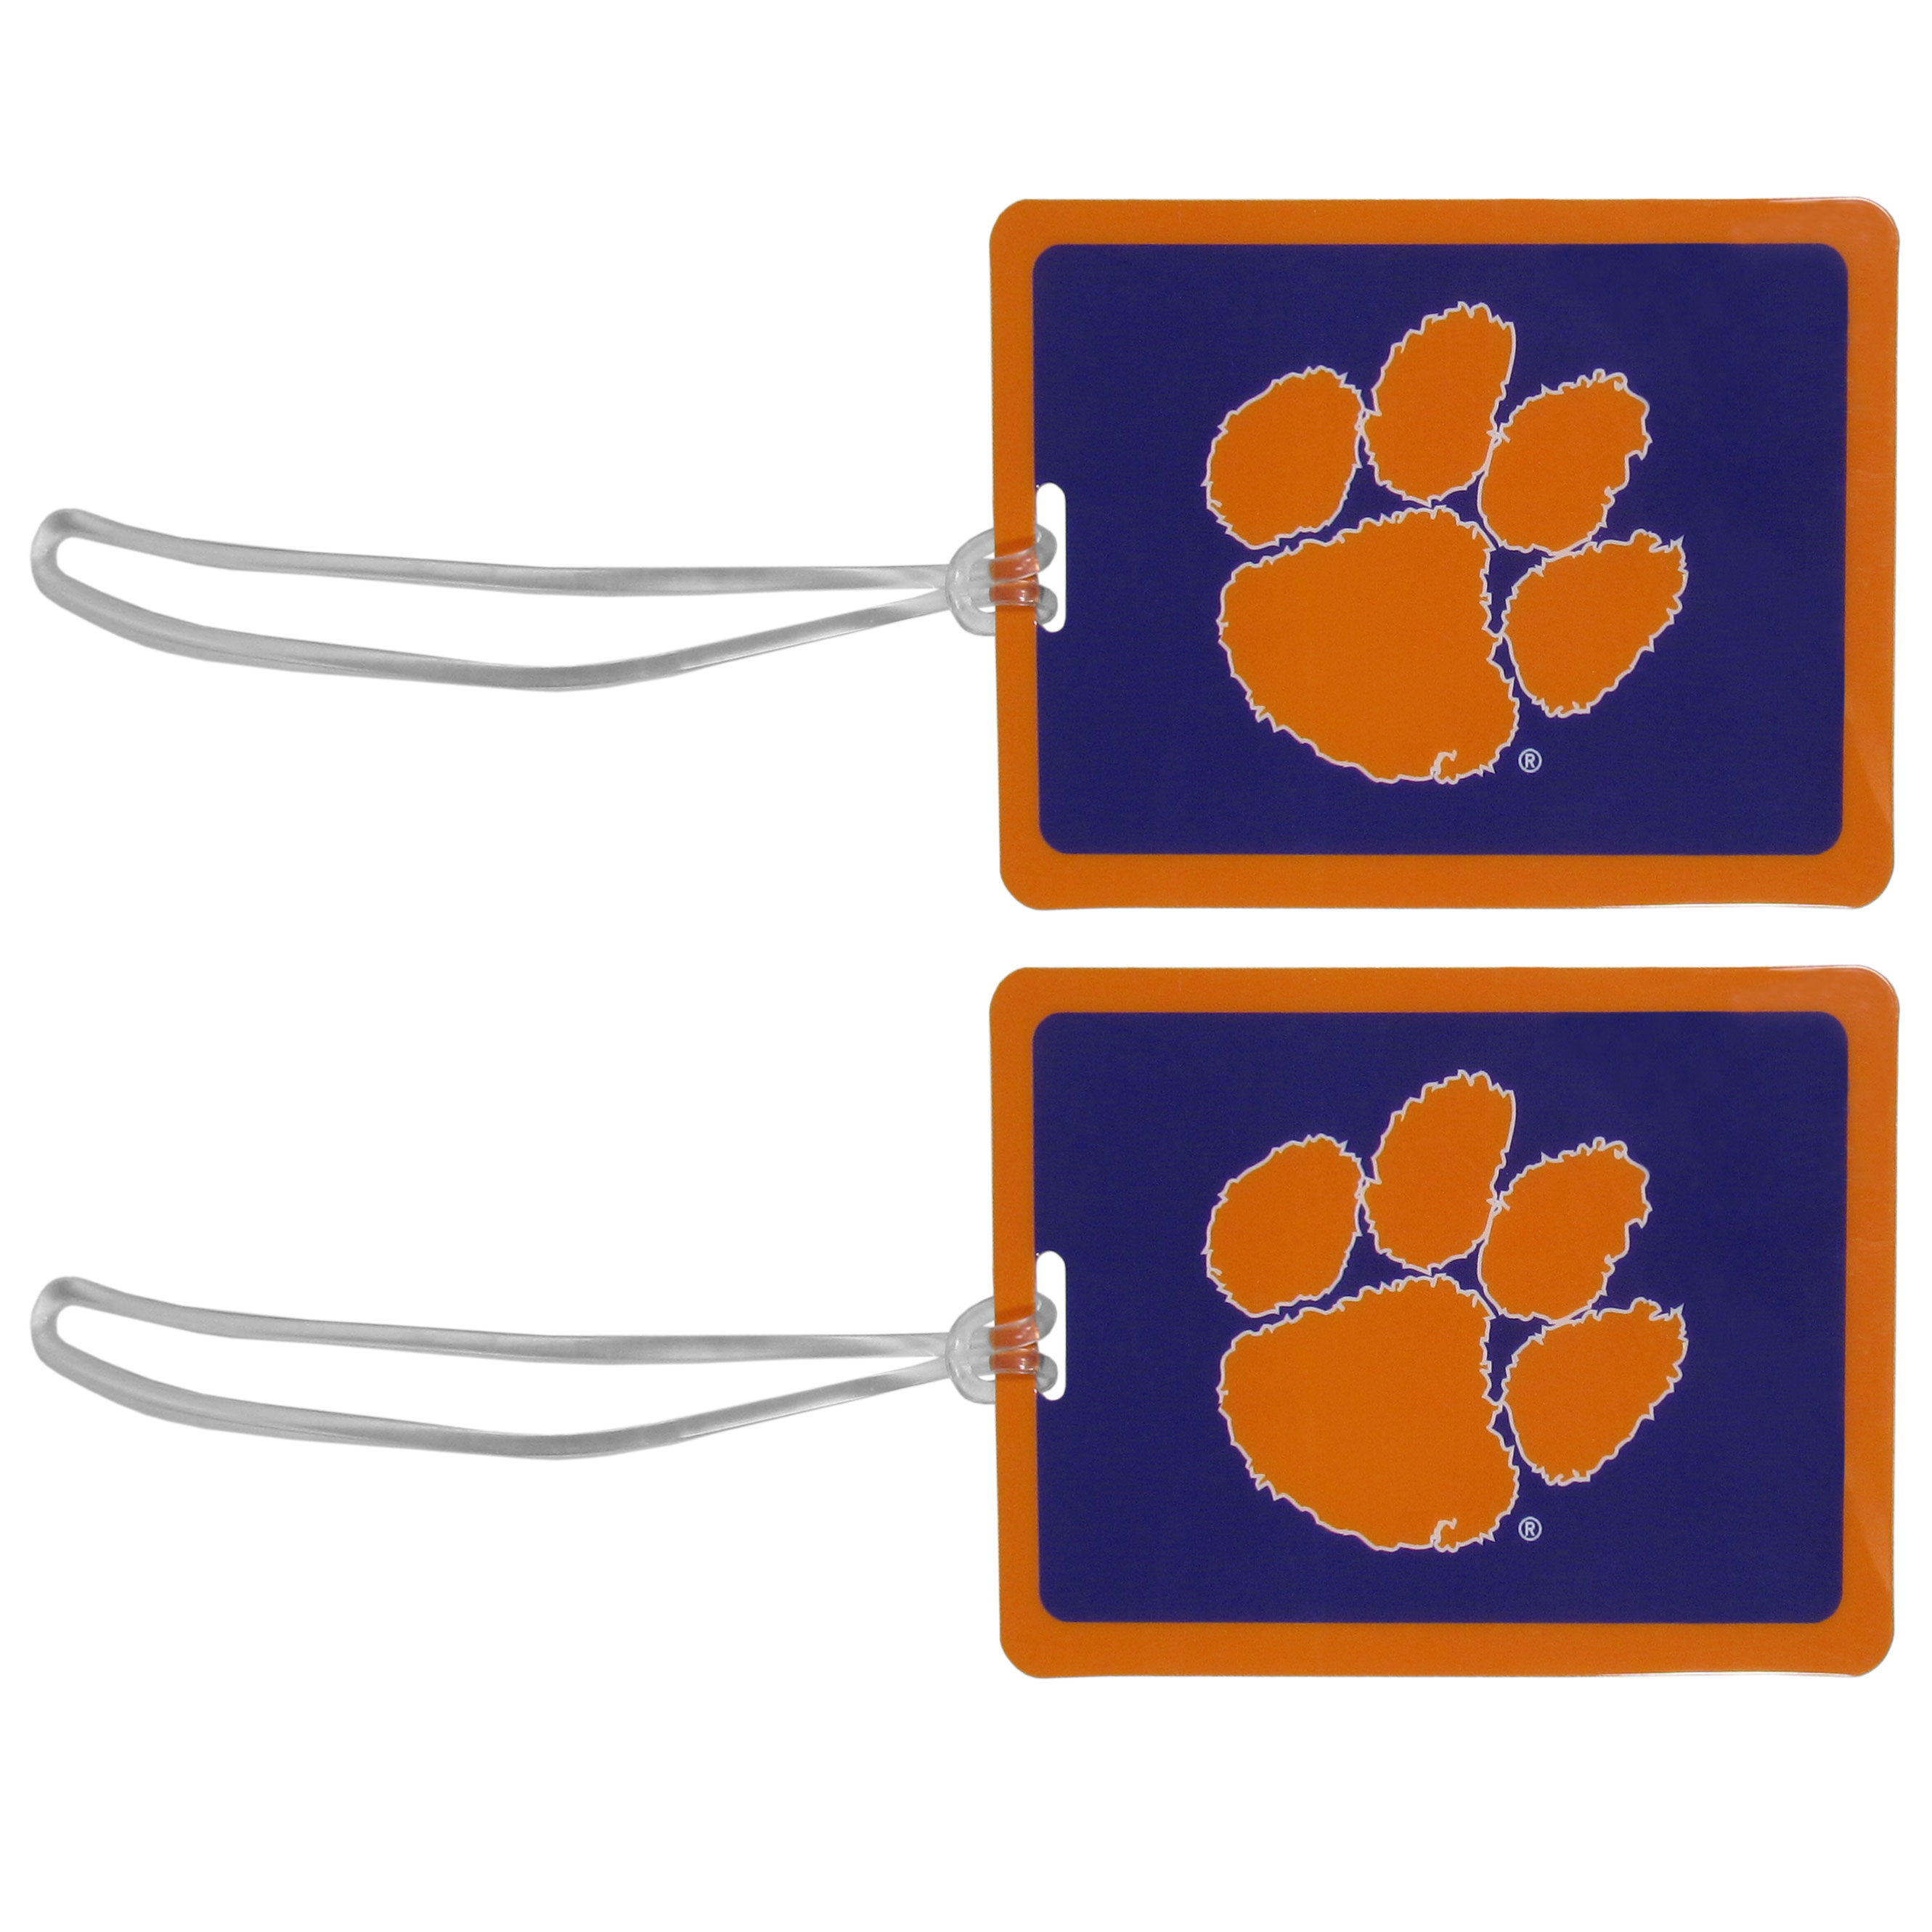 Clemson Tigers Vinyl Luggage Tag, 2pk - Tired of trying to spot your suitcase or bag in a sea of luggage? Try our large and colorful Clemson Tigers luggage tags. The tag is 4x3 inches and has a 5 inch cord to attach it easily to your bags, backpacks or luggage. The front of the tag features the team logo in a bright, team colored background and you can write you name, address and phone number on the back of the tag.